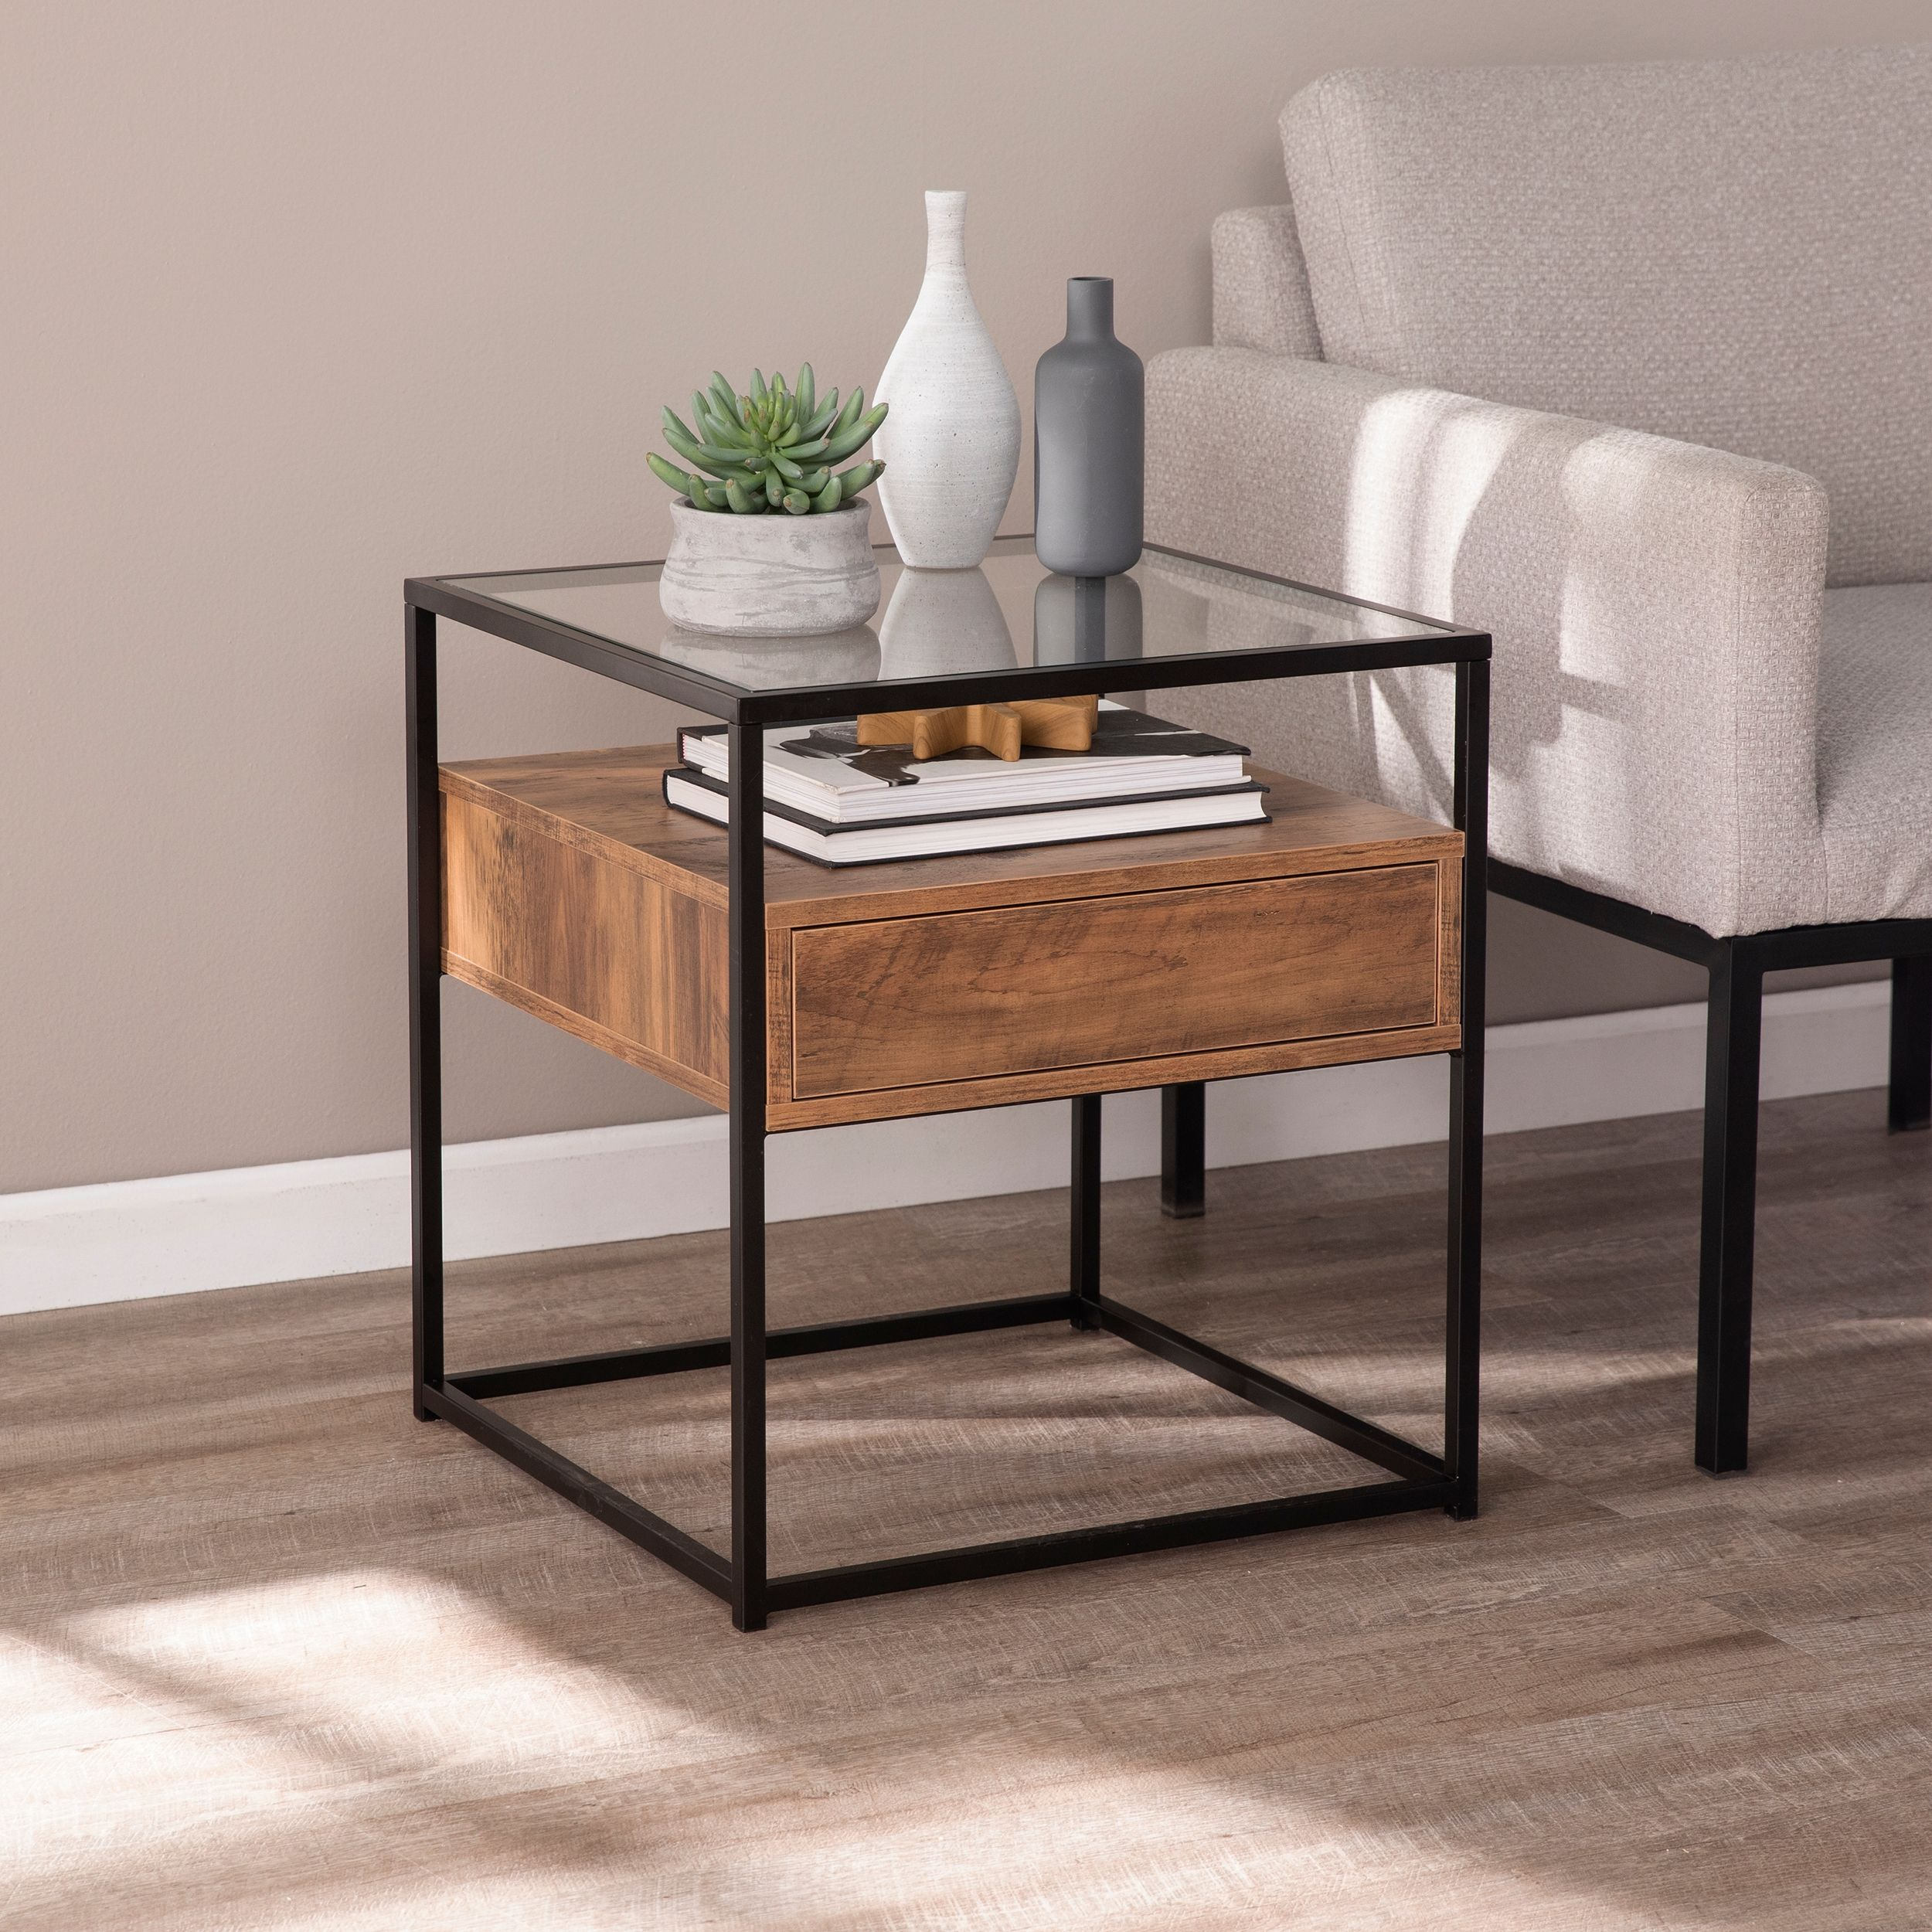 Torden Glass Top End Table With Storage In 2020 Living Room Side Table Glass Top End Tables Table Decor Living Room